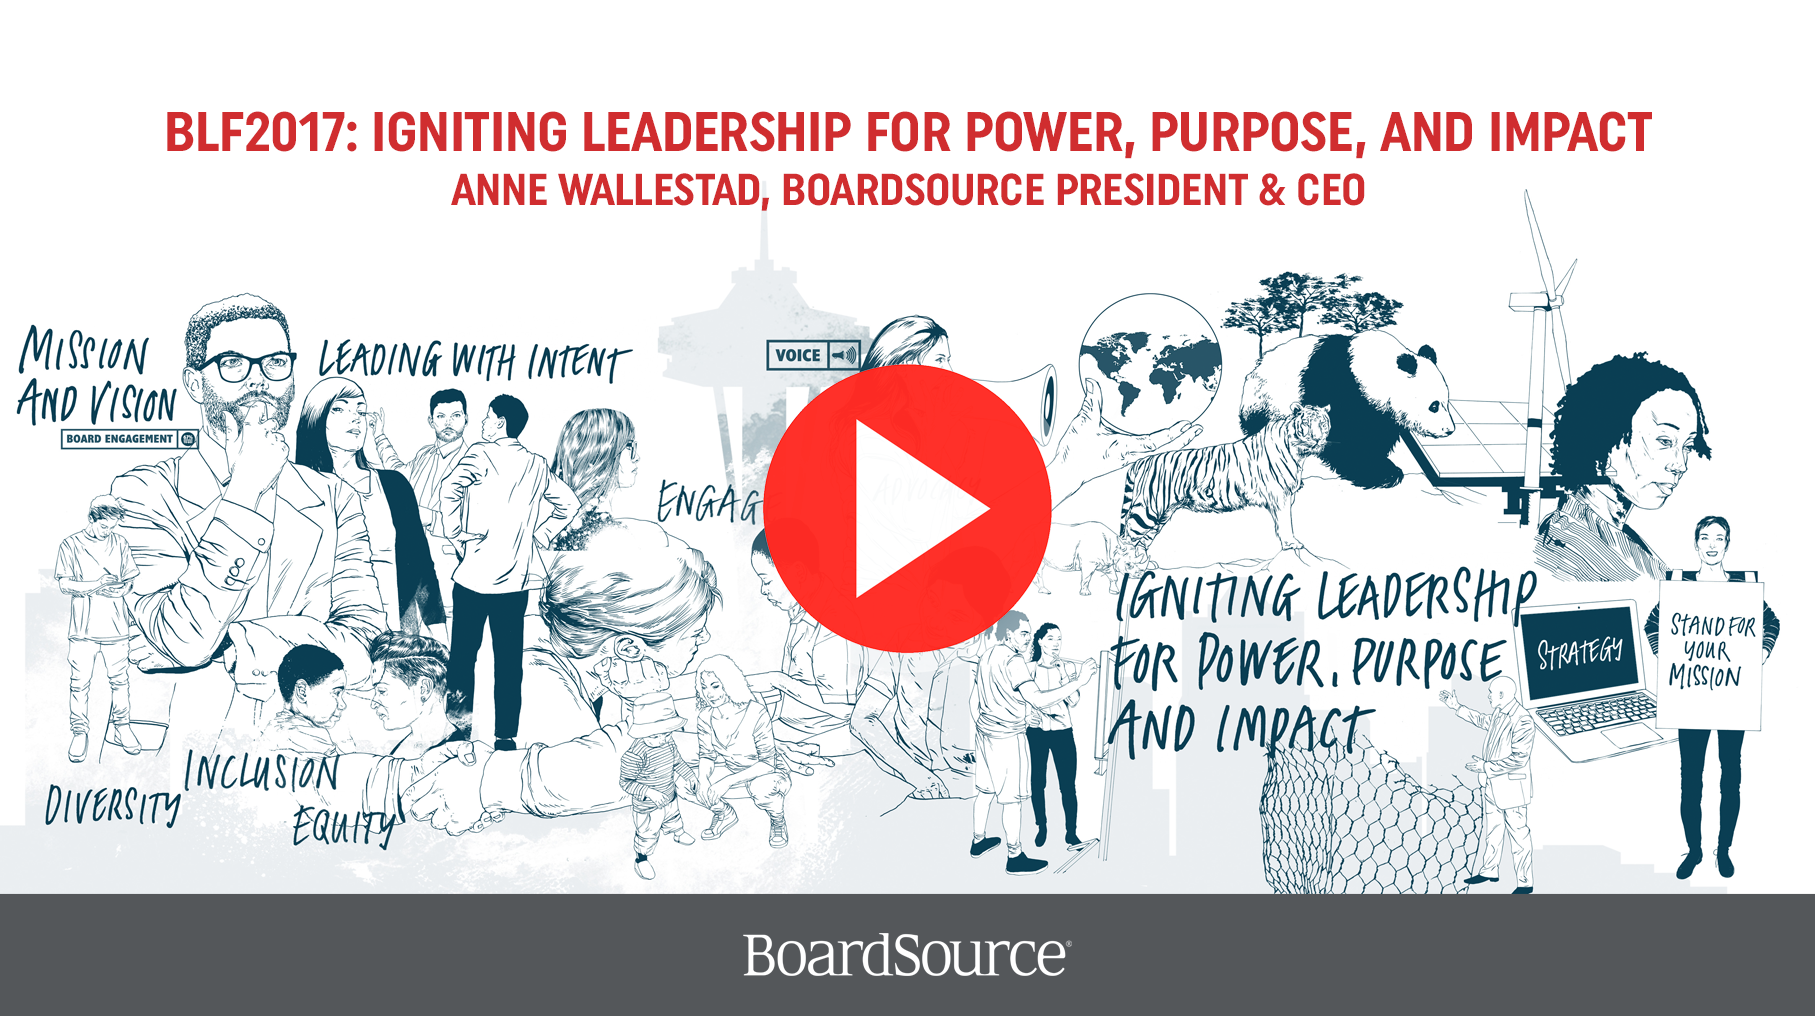 Anne Wallestad BoardSource president and CEO